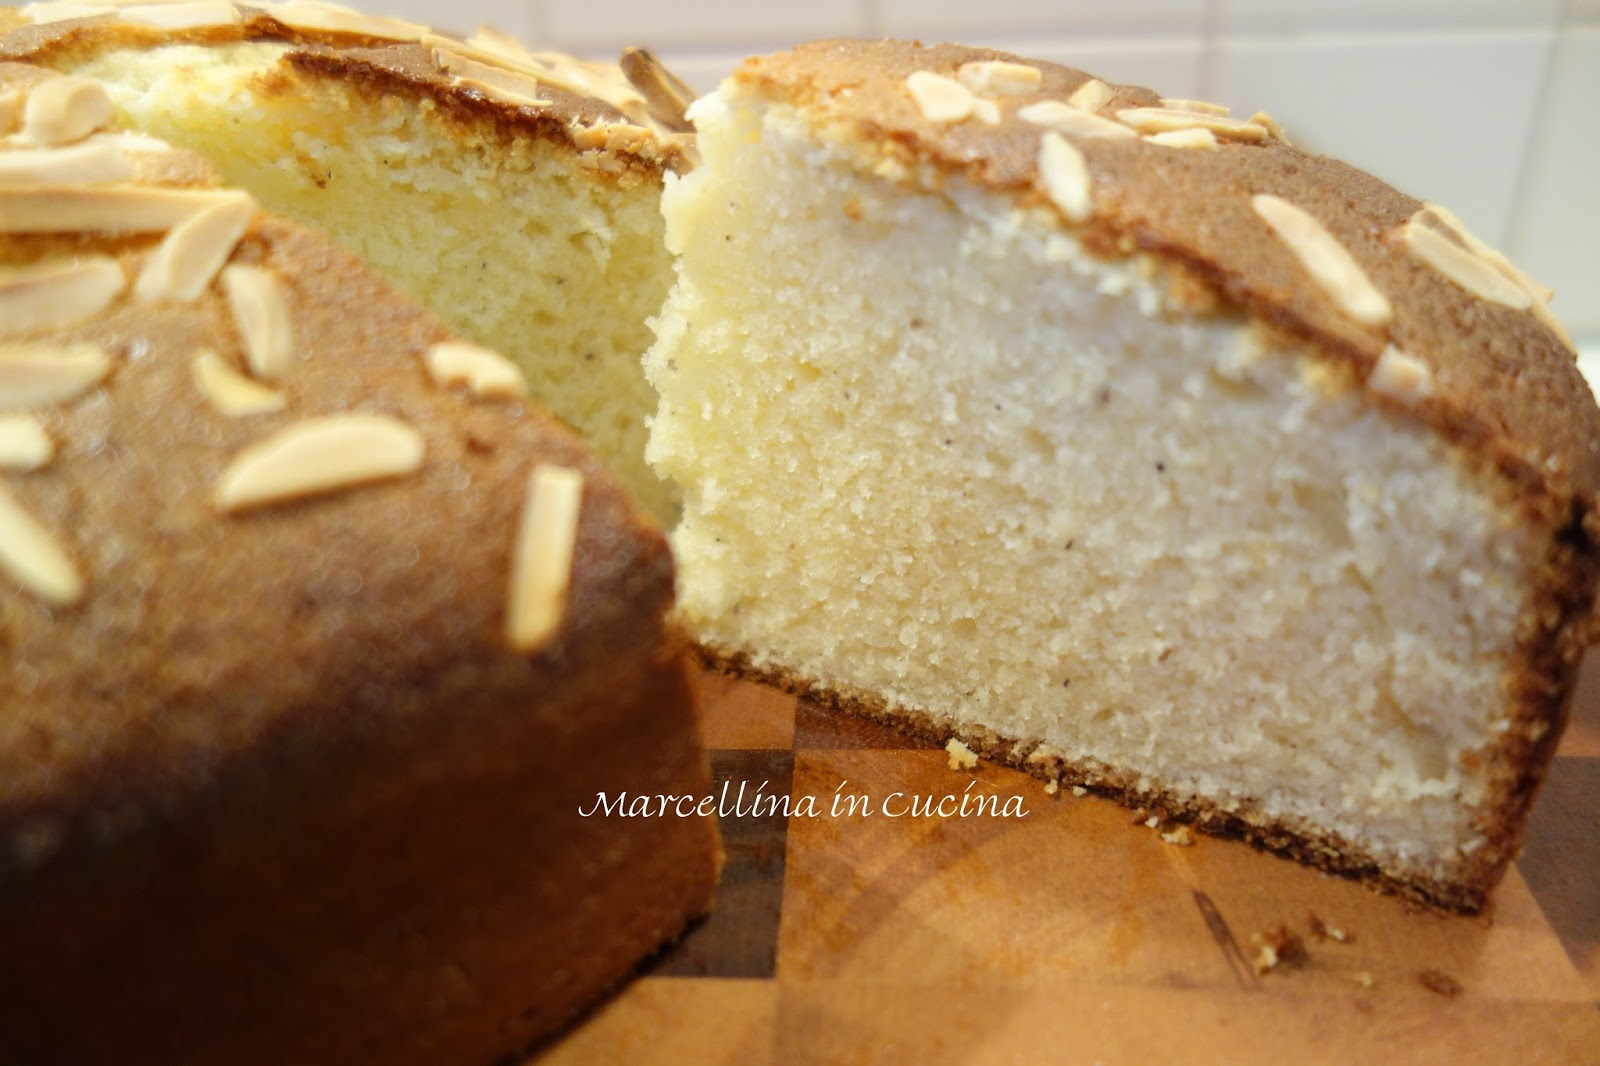 Indian Mawa Cake and Marsala Biscuits- The Daring Bakers' August 2013 ...